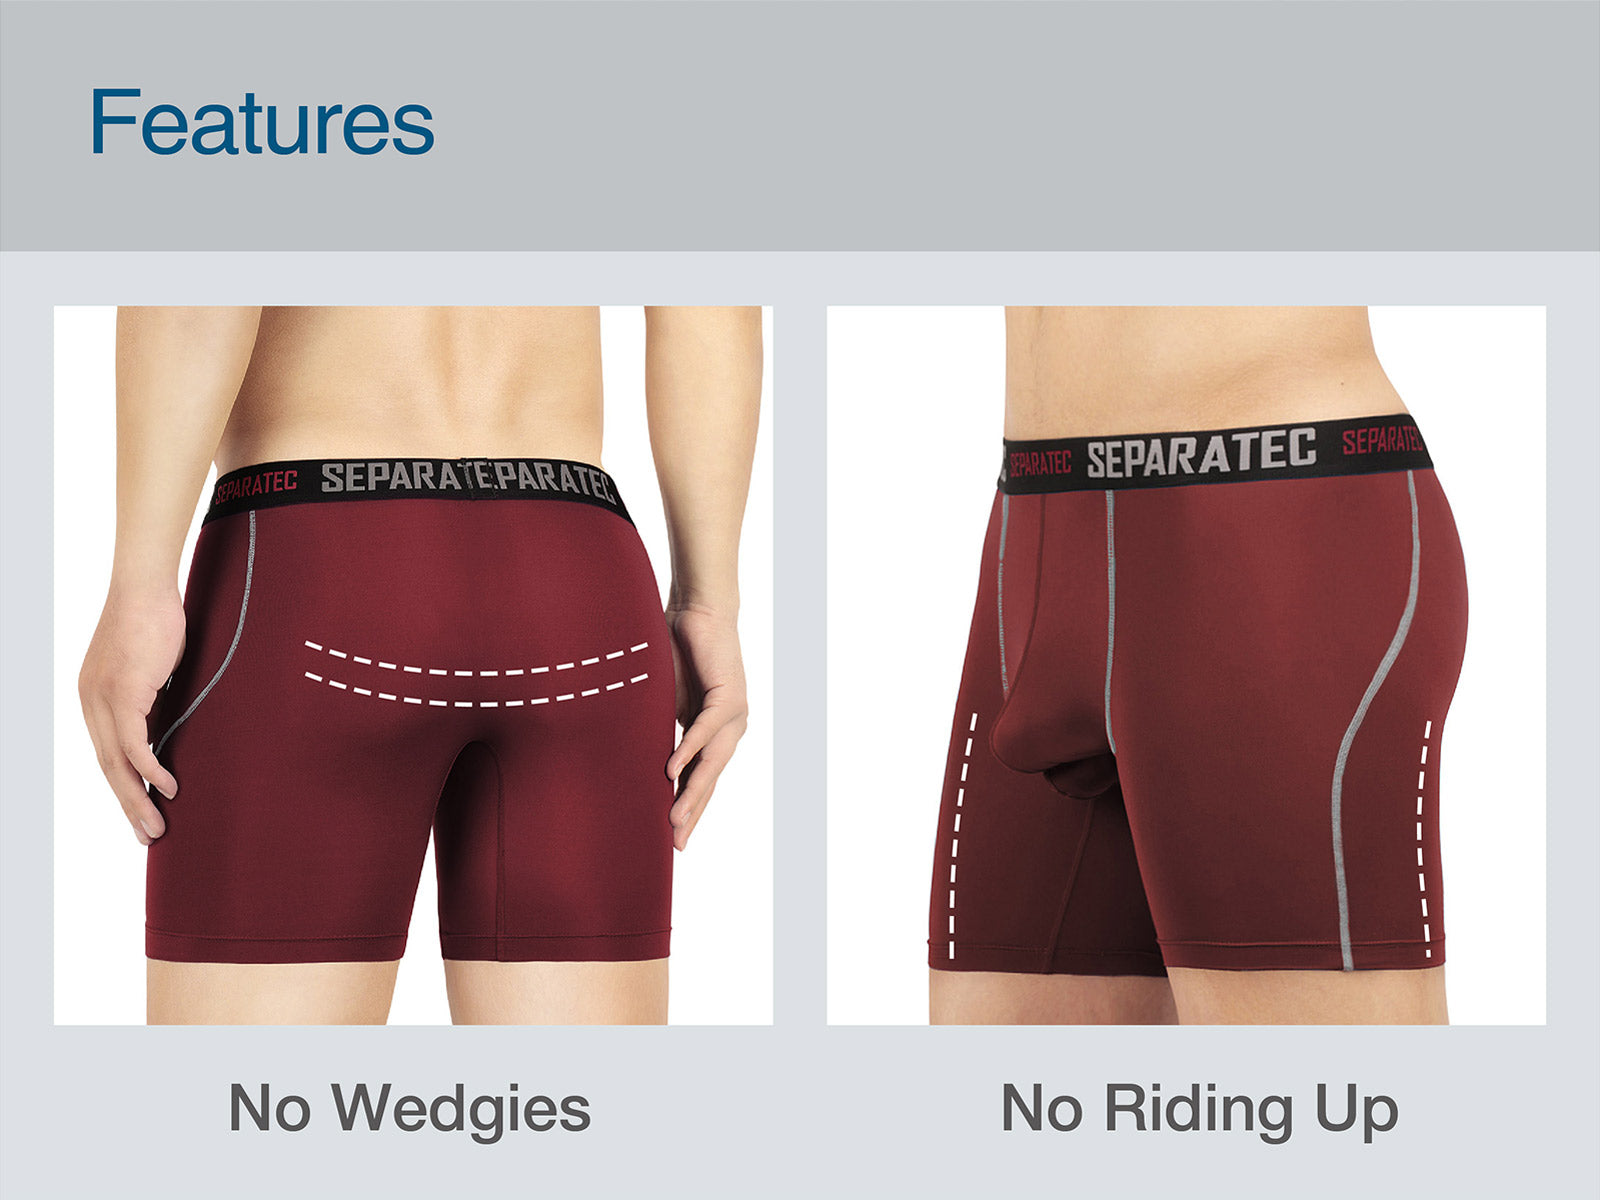 Separatec 2 Pouch underwear, No wedgies, No riding up, sport underwear, long leg boxer briefs